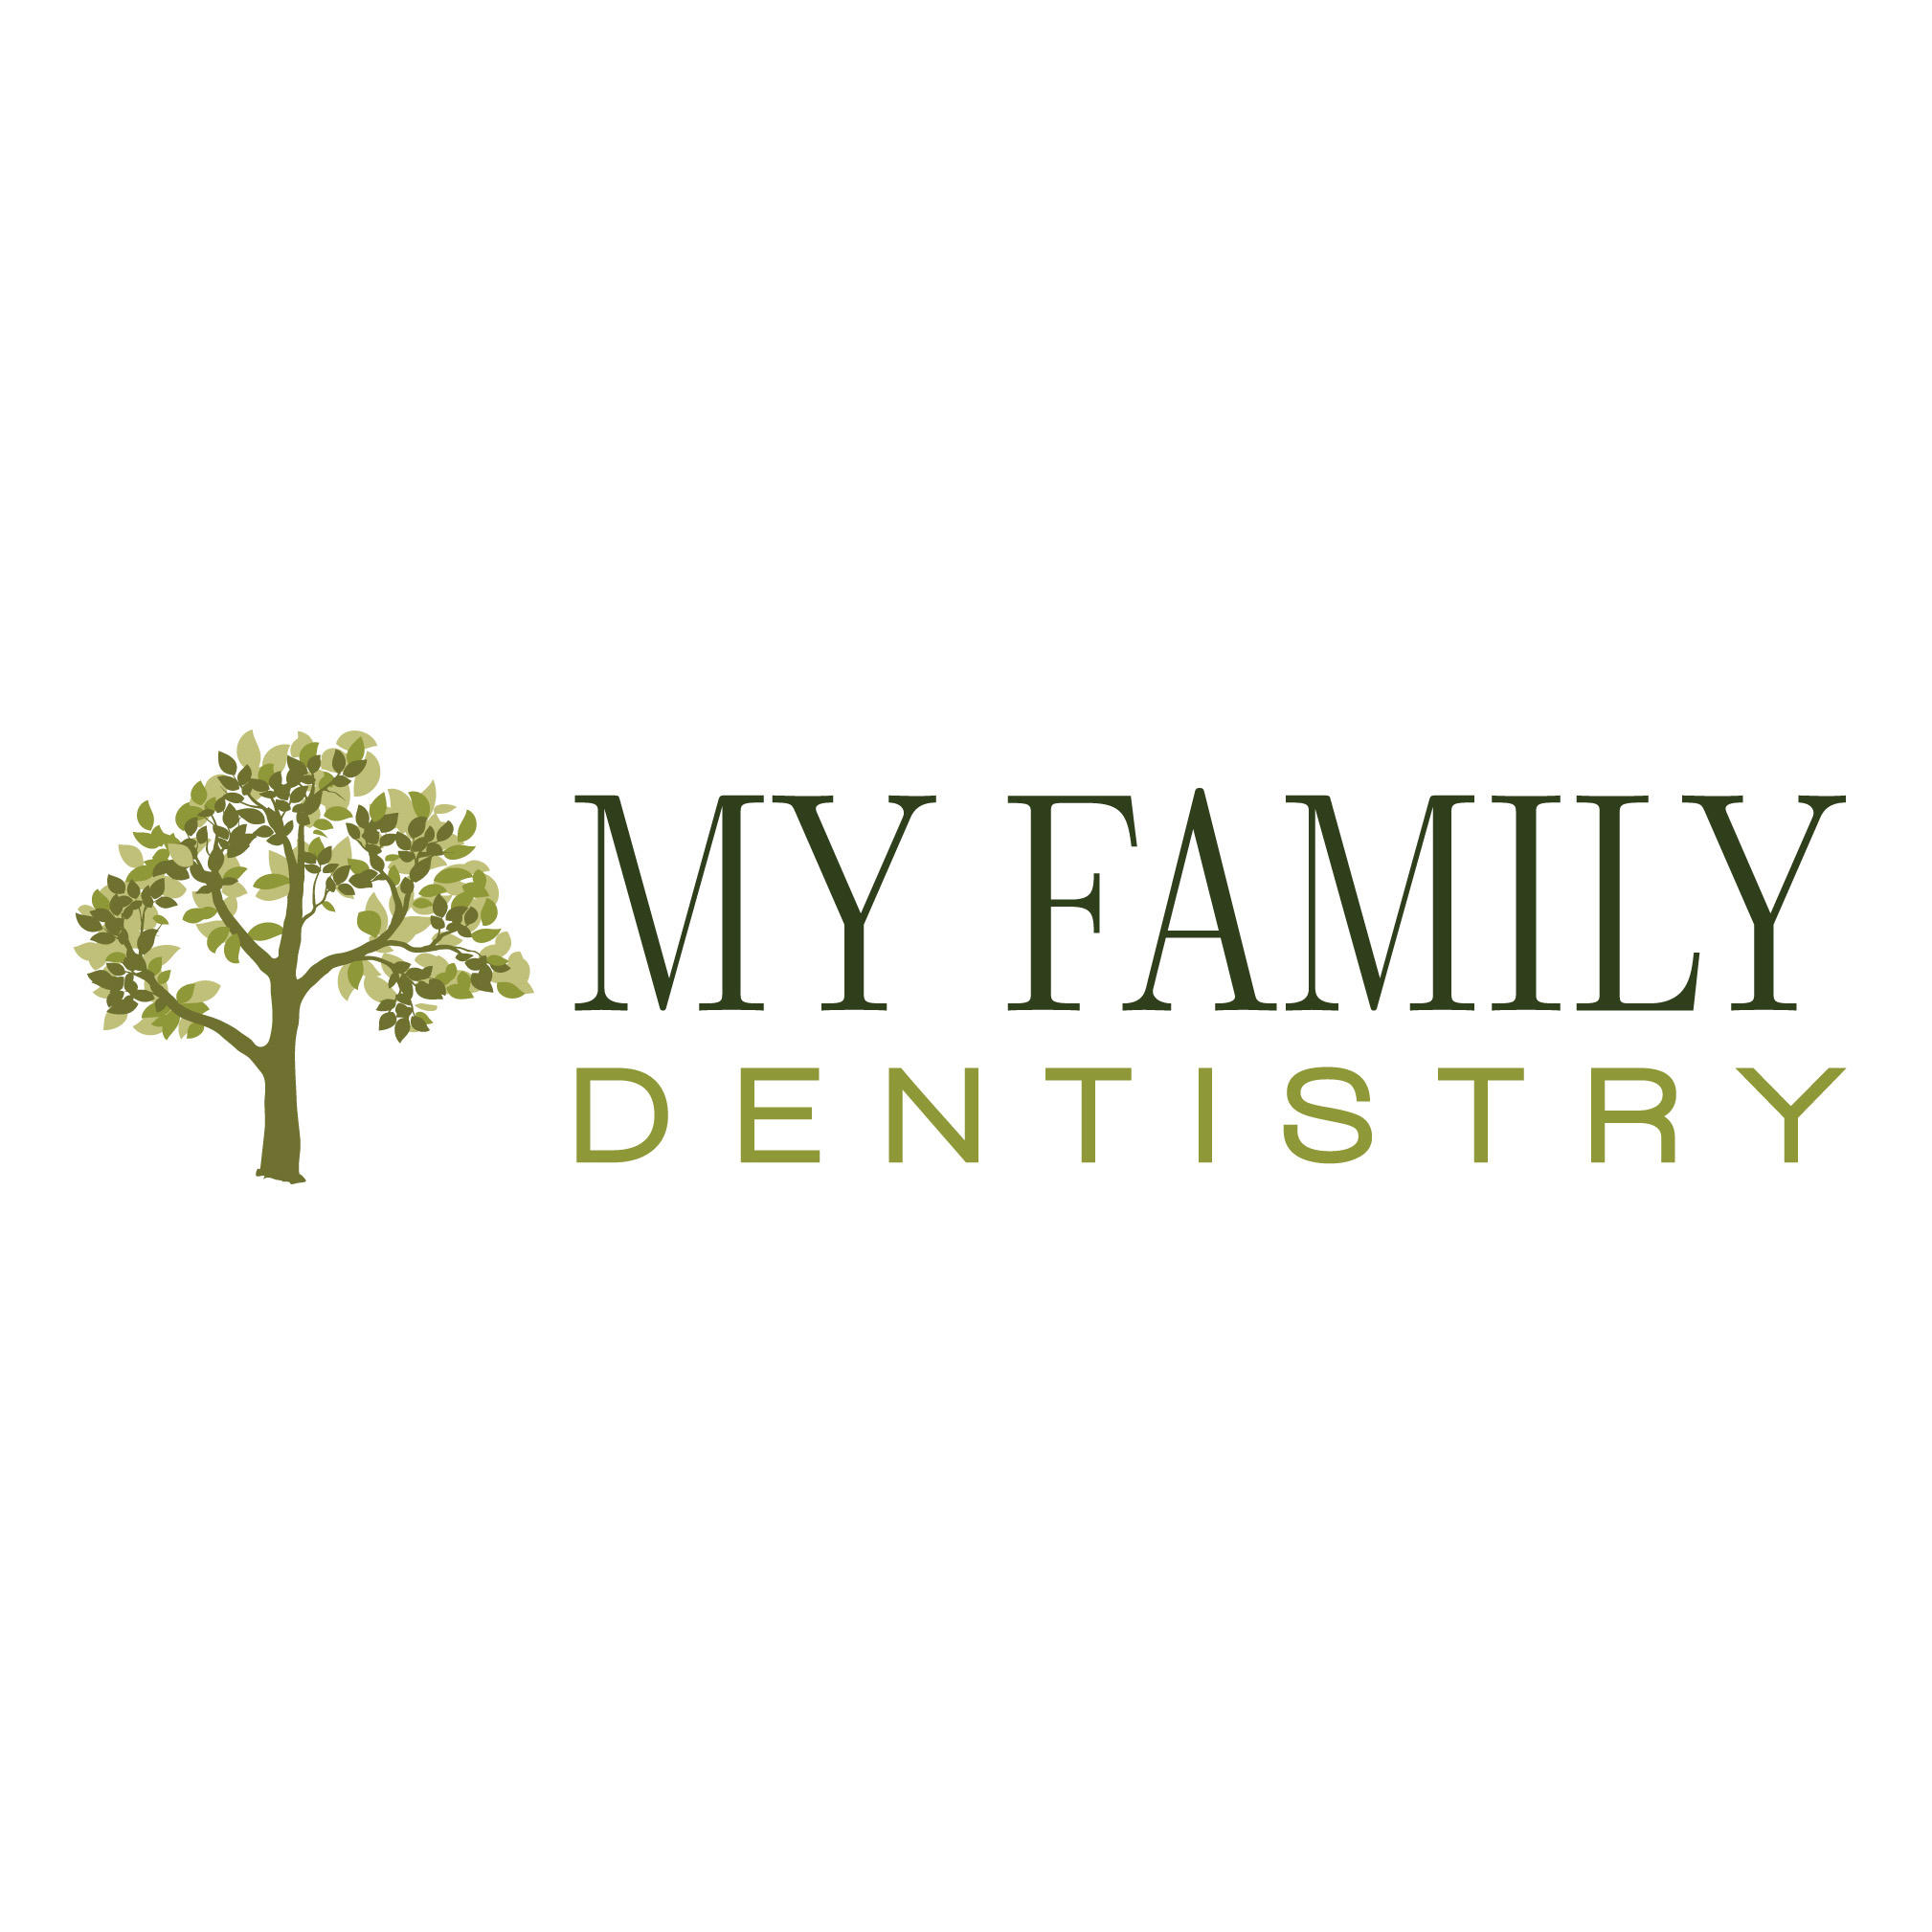 My Family Dentistry